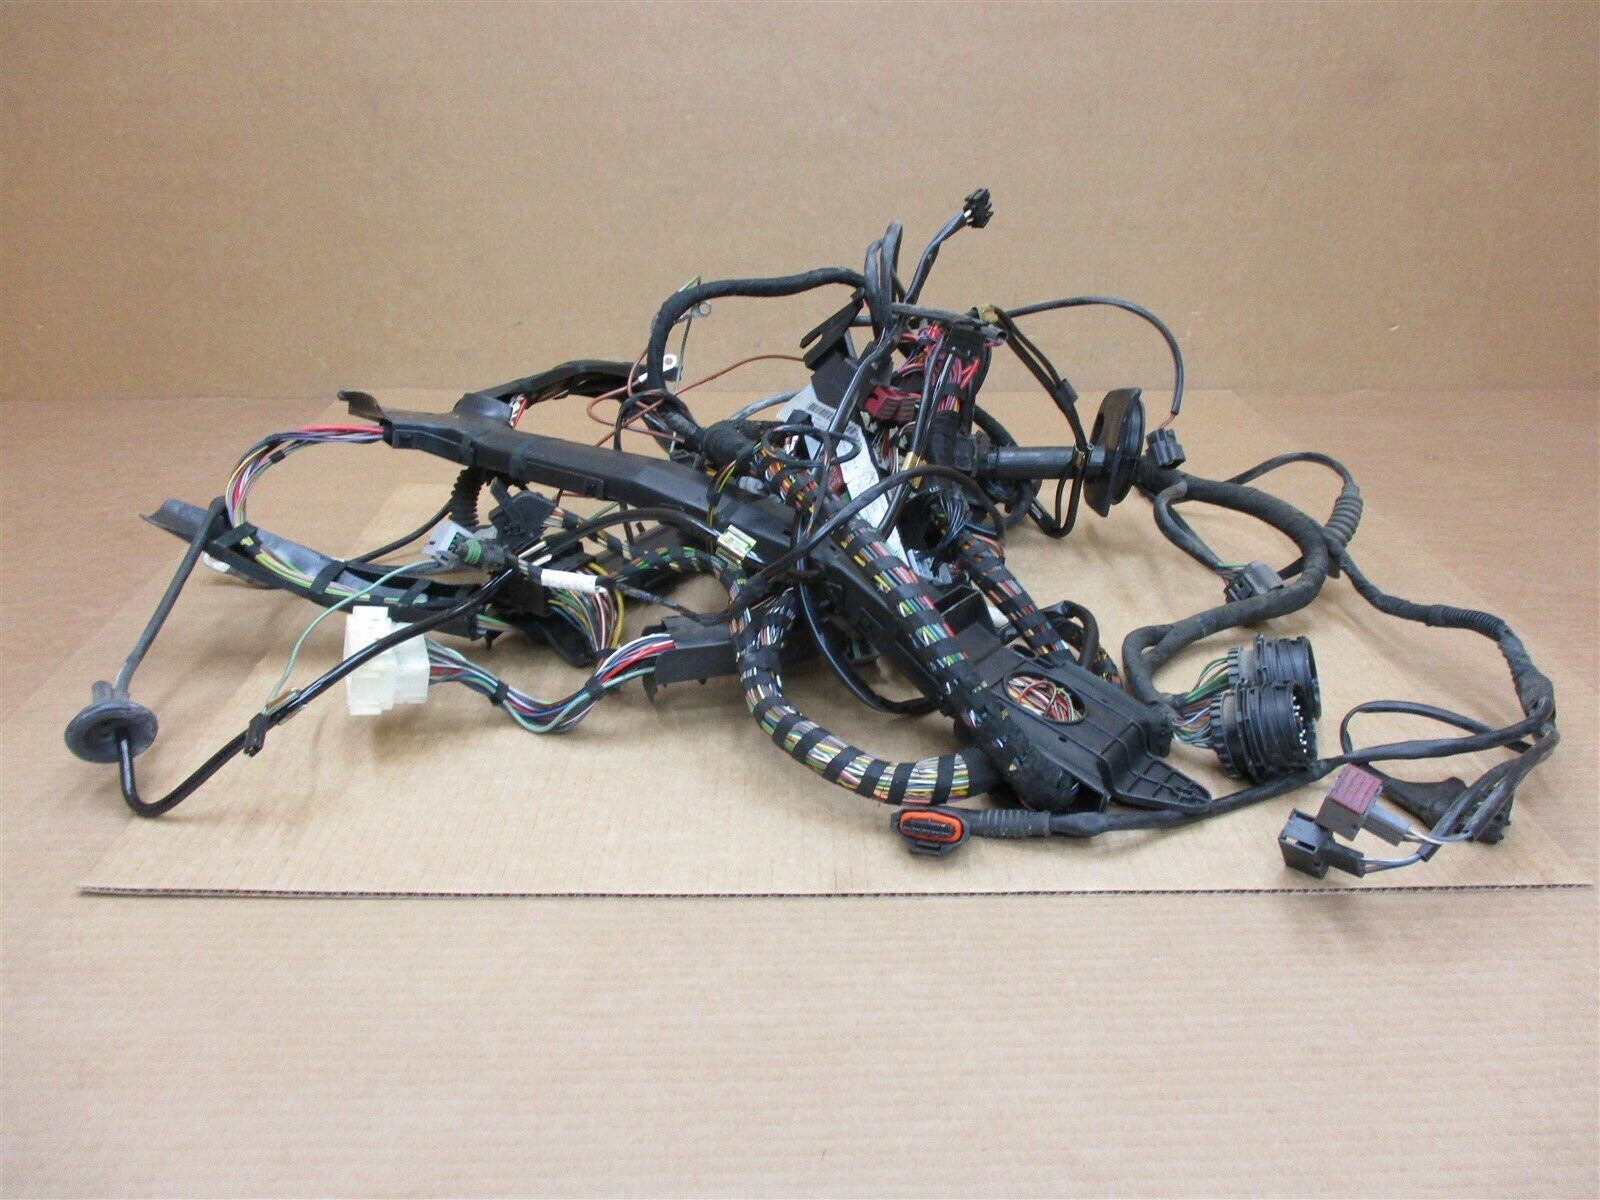 02 Carrera 4S 911 AWD Porsche 996 REAR WIRING HARNESS 99661017201 RELAYS on engine harness, obd0 to obd1 conversion harness, pony harness, dog harness, suspension harness, oxygen sensor extension harness, cable harness, fall protection harness, amp bypass harness, electrical harness, pet harness, maxi-seal harness, nakamichi harness, alpine stereo harness, battery harness, safety harness, radio harness,